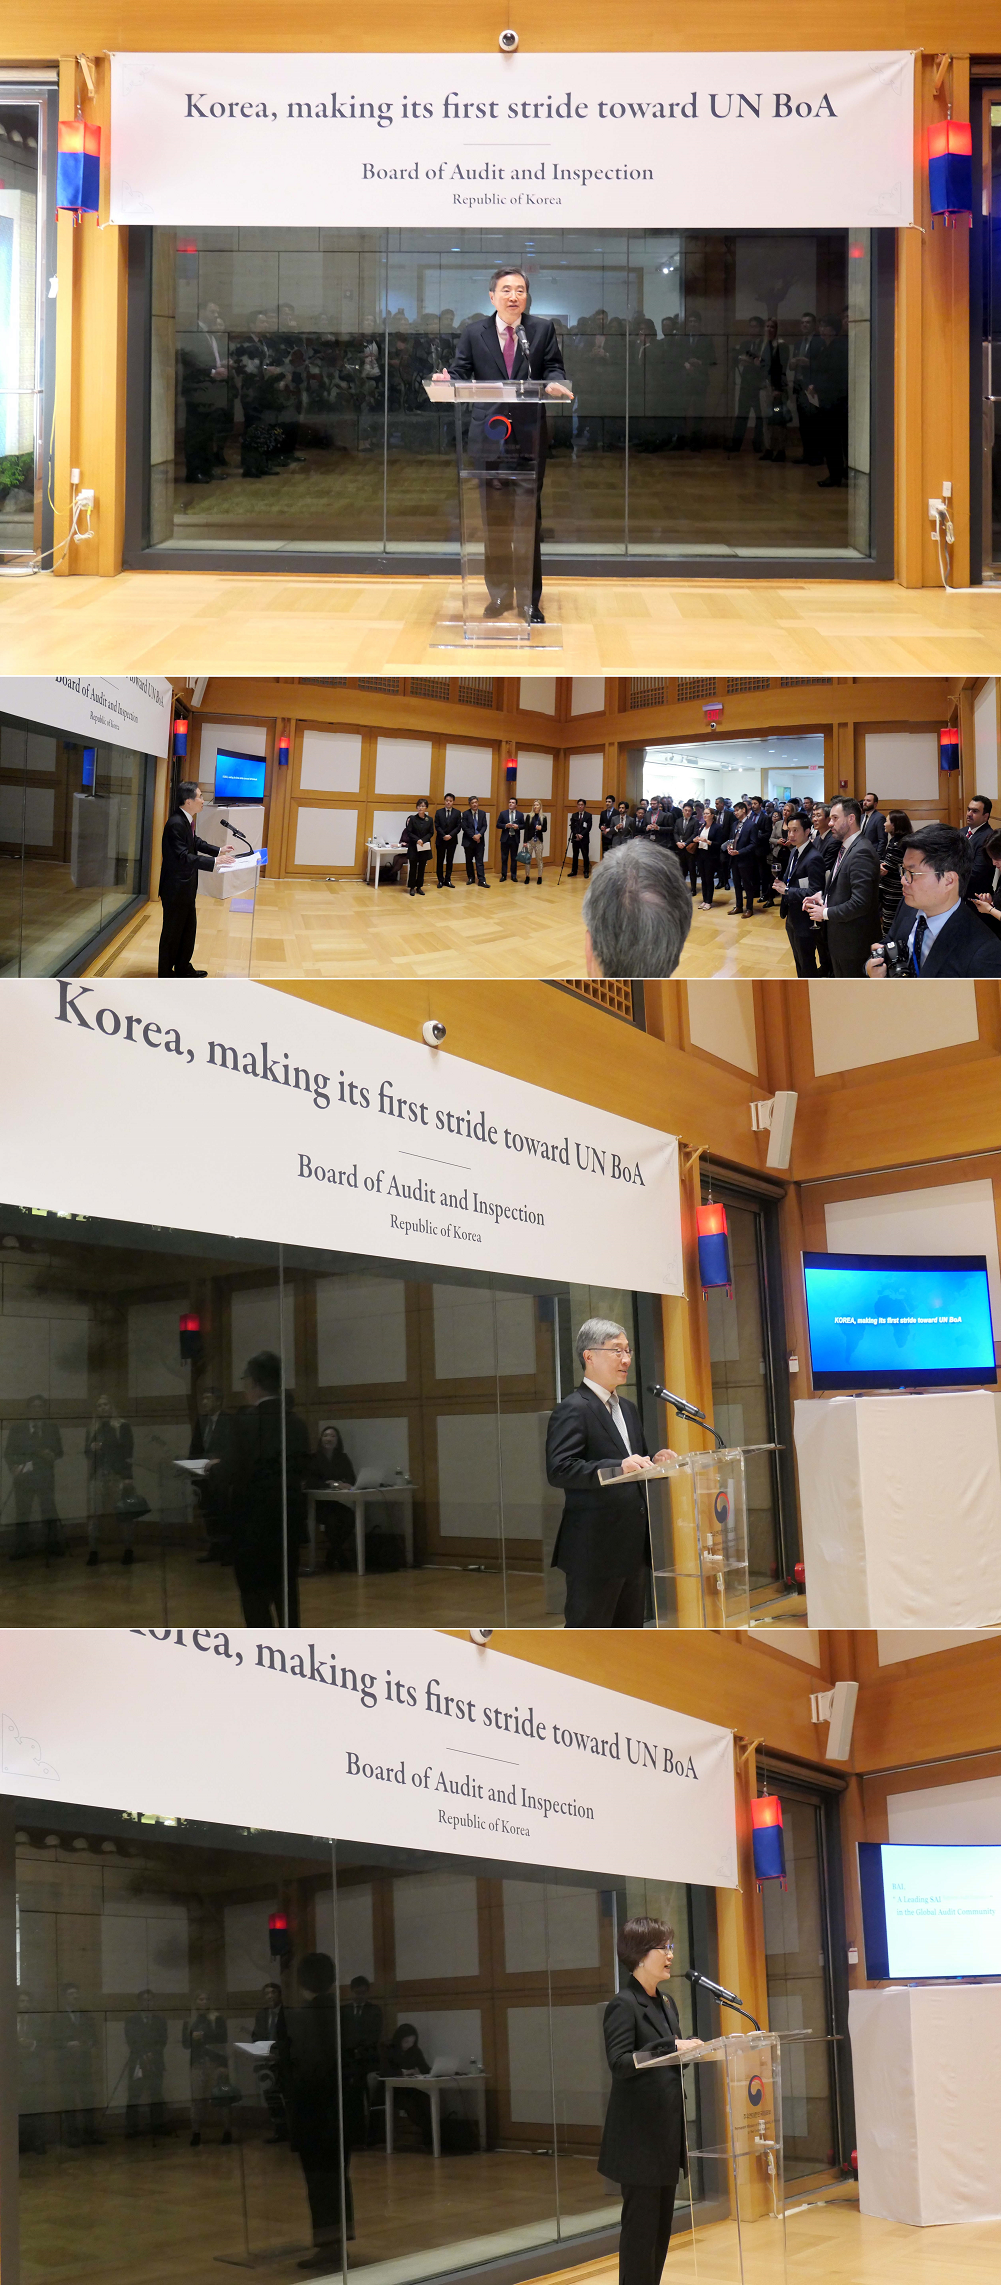 Reception to introduce the ROK candidature for the election of the UN Board of Auditors for the term 2020-2026